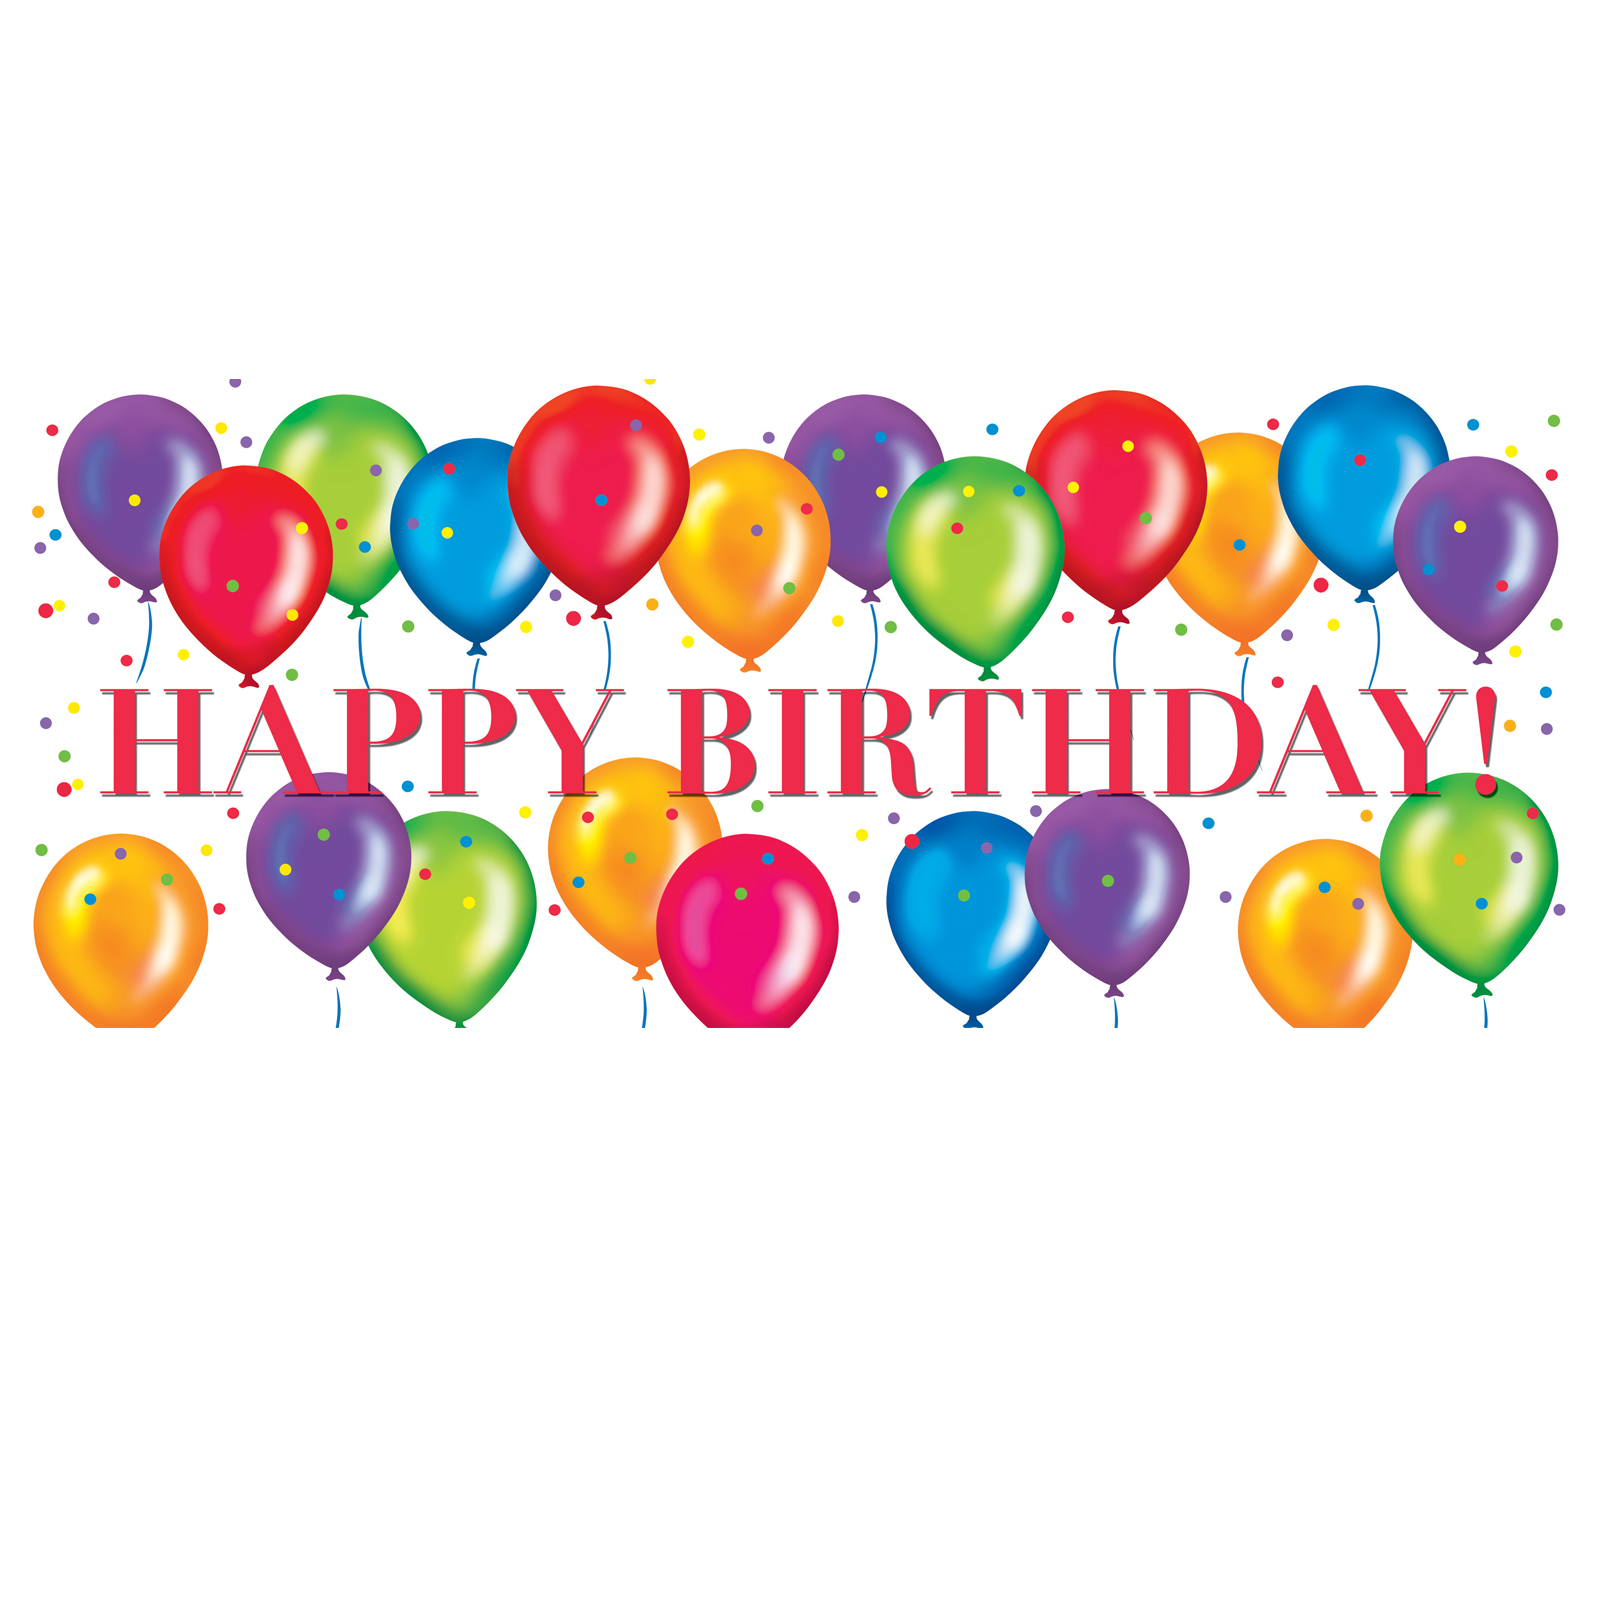 Happy birthday clip art 6 1.  - Free Happy Birthday Clipart